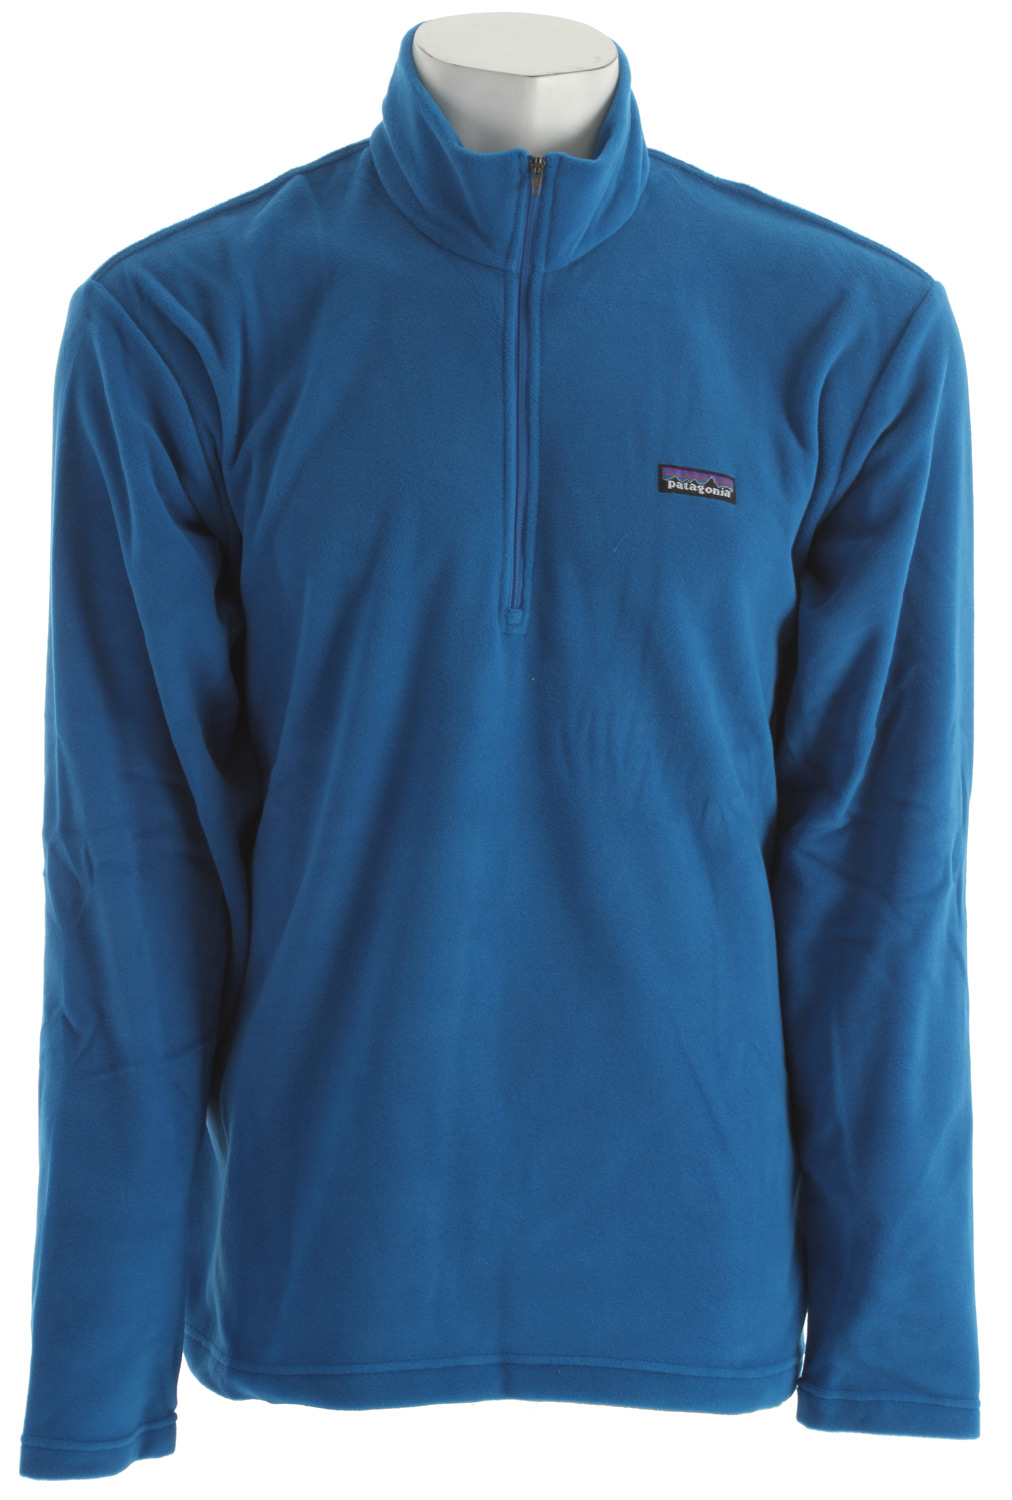 A lightweight, warm and fast-drying 1/4-zip microfleece that works as either a midlayer or shirt. This garment has a Regular Fit A day-in-day-out pullover of notable durability and habit-forming softness, the Micro D 1/4-Zip is made from low-profile, lightweight 4.7-oz polyester fabric that wicks moisture, layers easily and has a deep, quarter-front zip to vent unwanted heat. With stand-up collar and a clean finish on hem and cuffs. Hip length.Key Features of the Patagonia Micro D 1/4 Zip Fleece: Ultrasoft, quick-drying polyester microfleece 1/4-zip pullover with zip-through, stand-up collar Clean-finish on hem and cuffs Hip length 4.7-oz 100% polyester (85% recycled) microfleece 238 g (8.4 oz) Made in Vietnam. Recycled Polyester: We recycle used soda bottles, unusable second quality fabrics and worn out garments into polyester fibers to produce many of our clothes. At Patagonia we seek to build the best product and cause no unnecessary harm. That's our mission statement, and it takes many forms. As it applies to making products, we work hard to source materials and use processes that are less harmful to the Earth without compromising quality. Because to us, quality is not only how well a product performs and holds up, but also how it's made. - $59.00